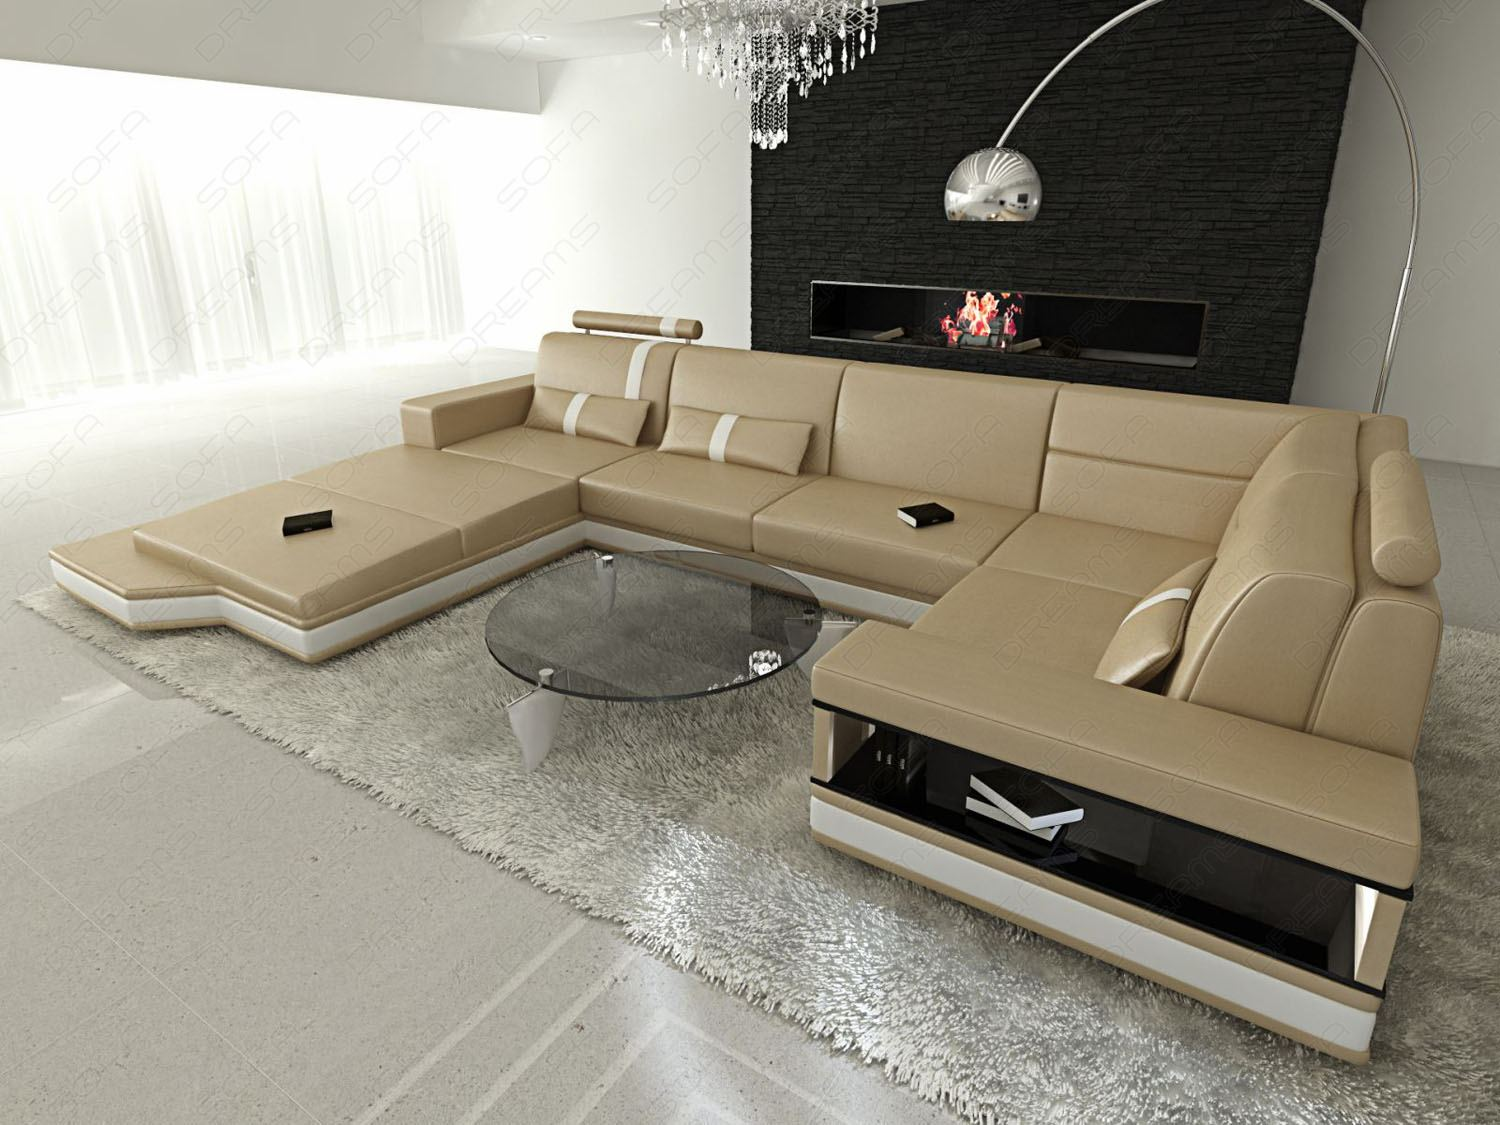 leather sofa messana in u shaped xxl corner couch sand. Black Bedroom Furniture Sets. Home Design Ideas